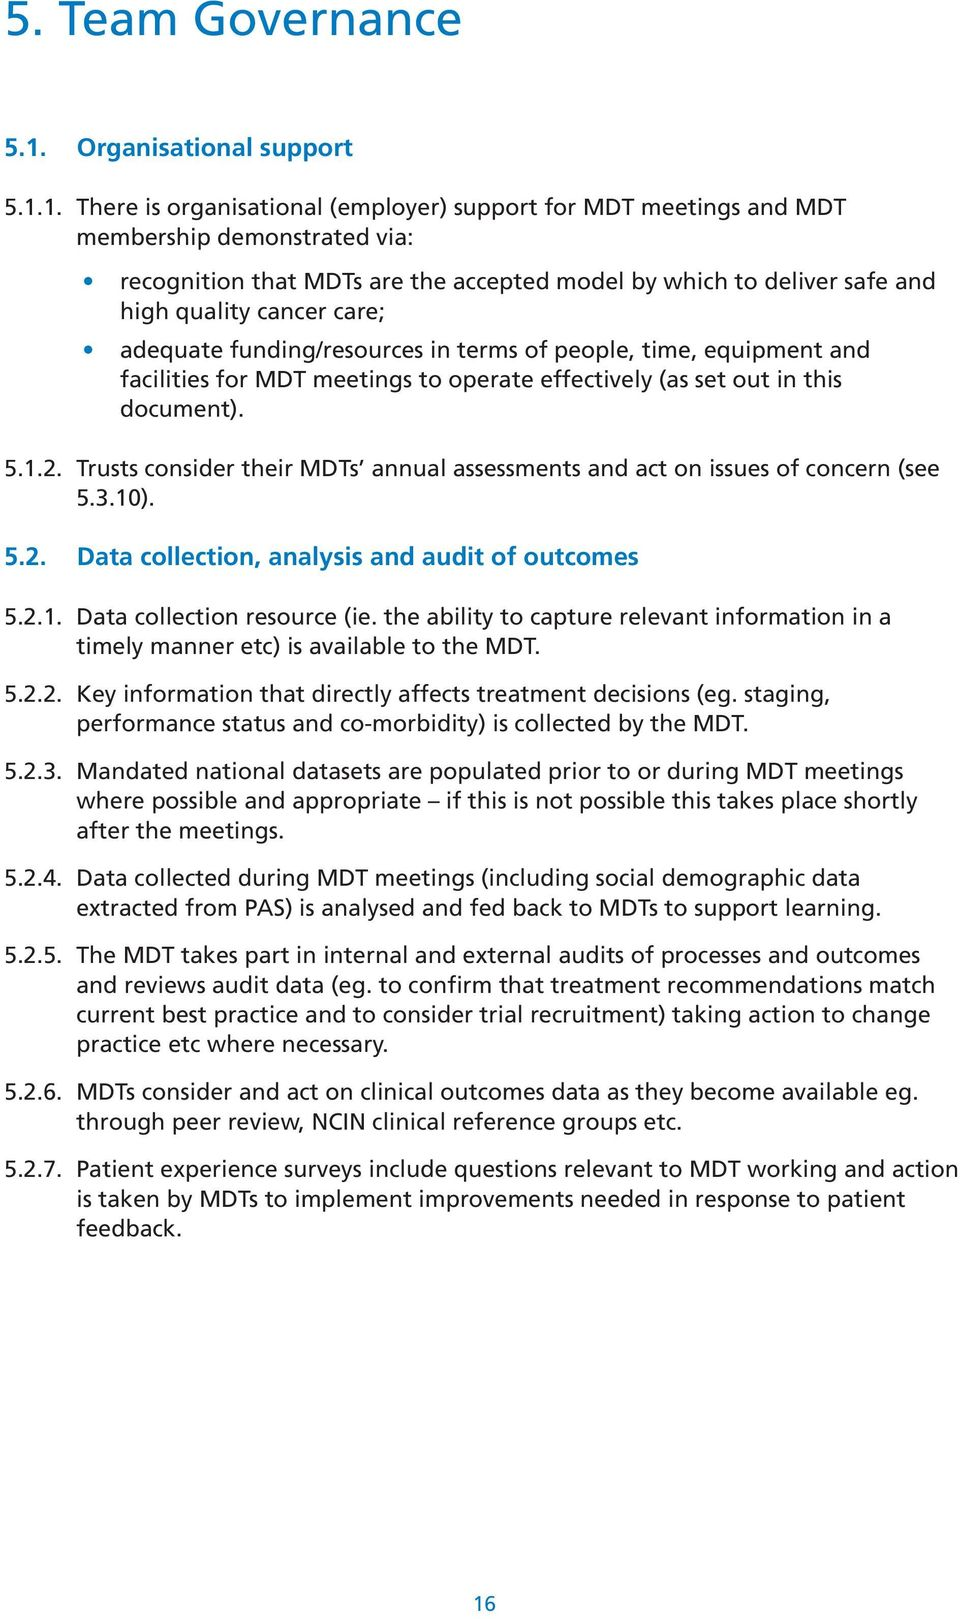 1. There is organisational (employer) support for MDT meetings and MDT membership demonstrated via: recognition that MDTs are the accepted model by which to deliver safe and high quality cancer care;